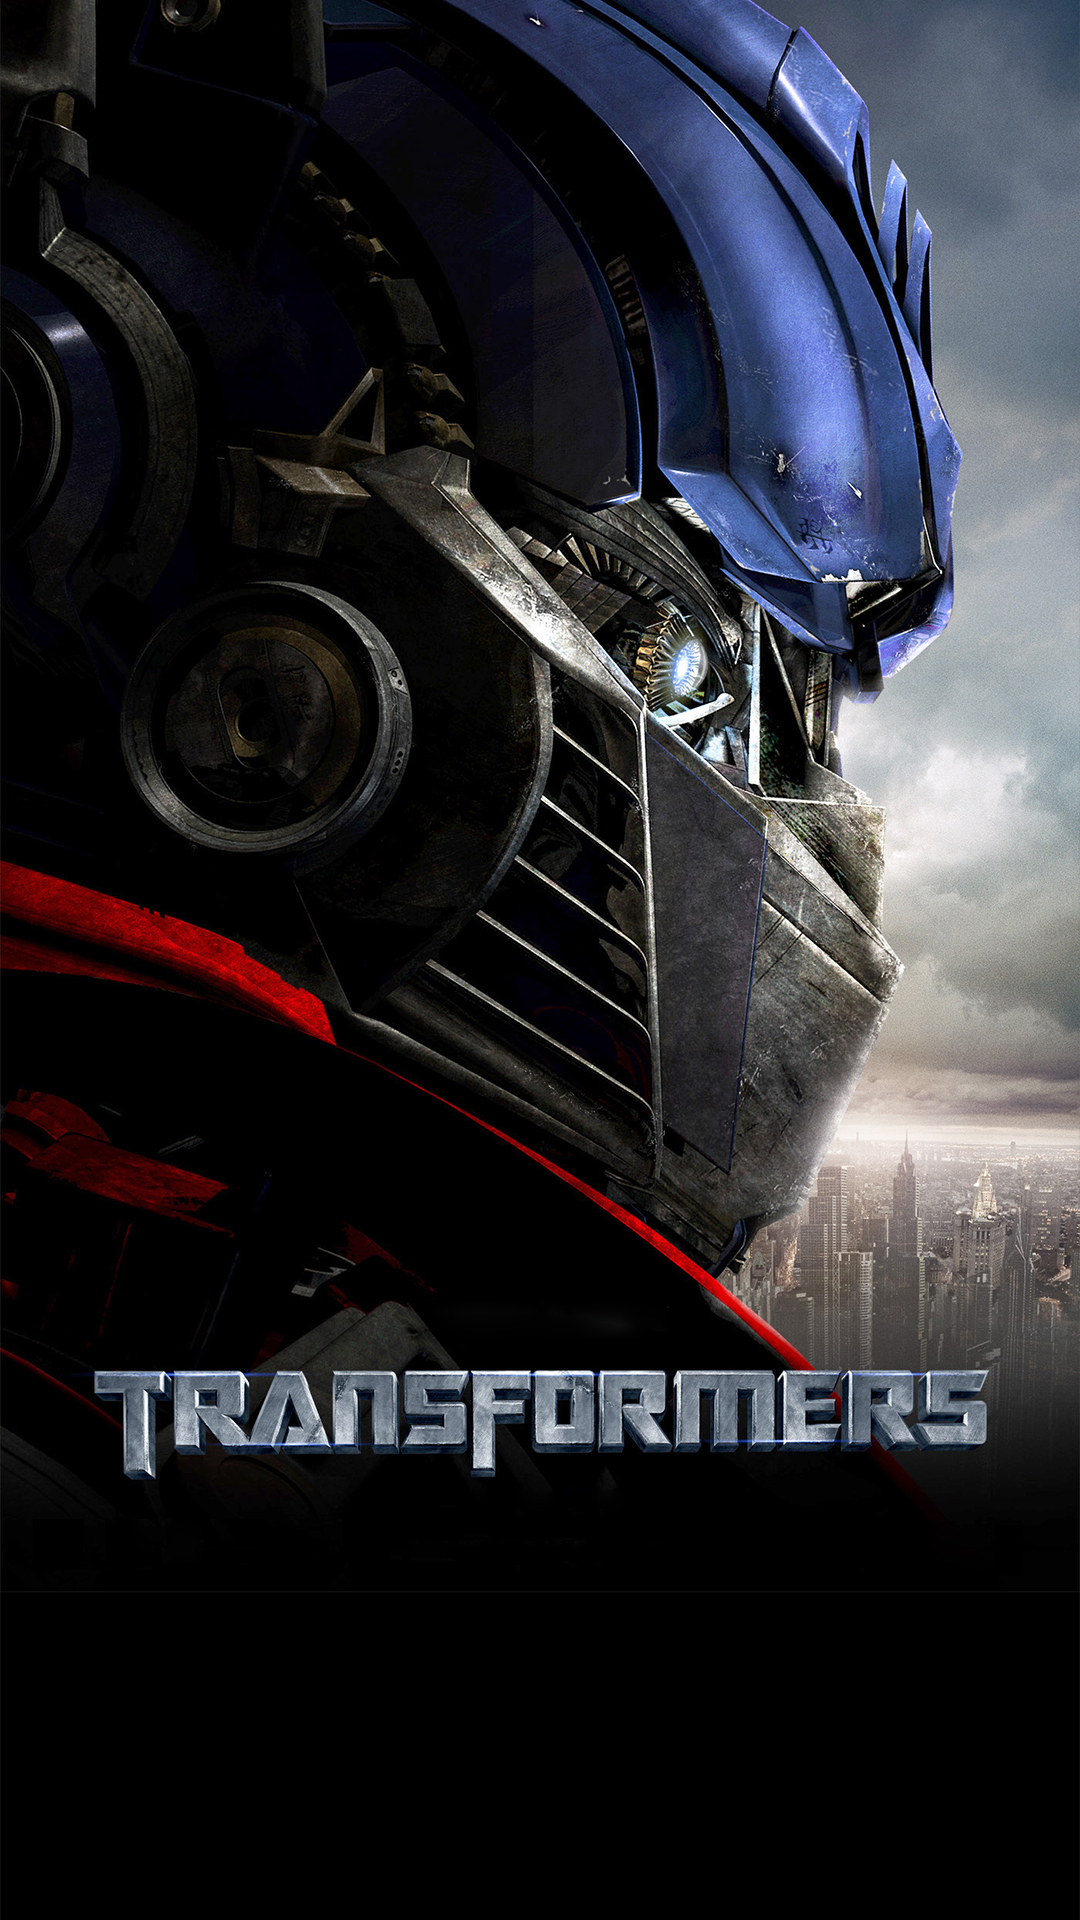 Optimus Prime Transformers - Official Transformers Movie Poster - HD Wallpaper